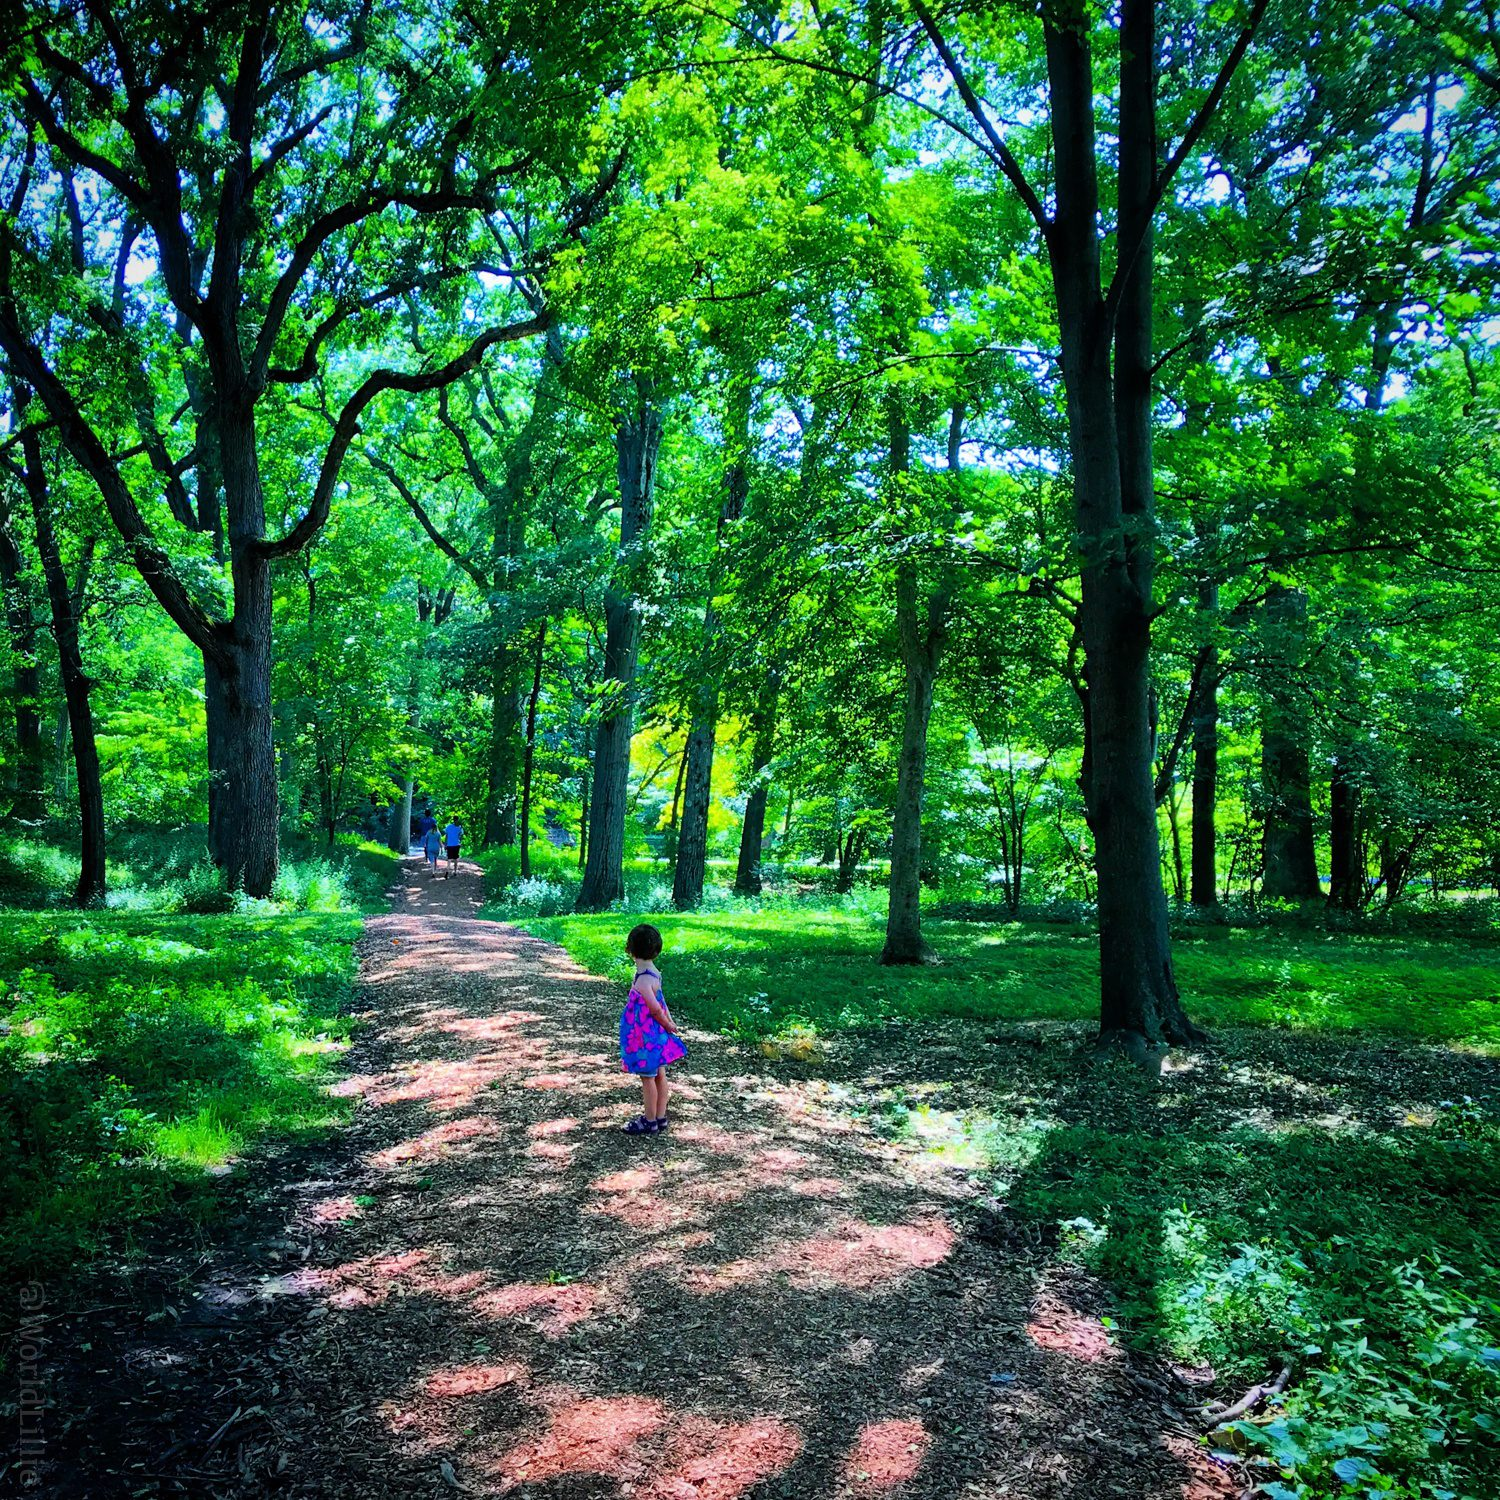 Walking in nature is another form of therapy.